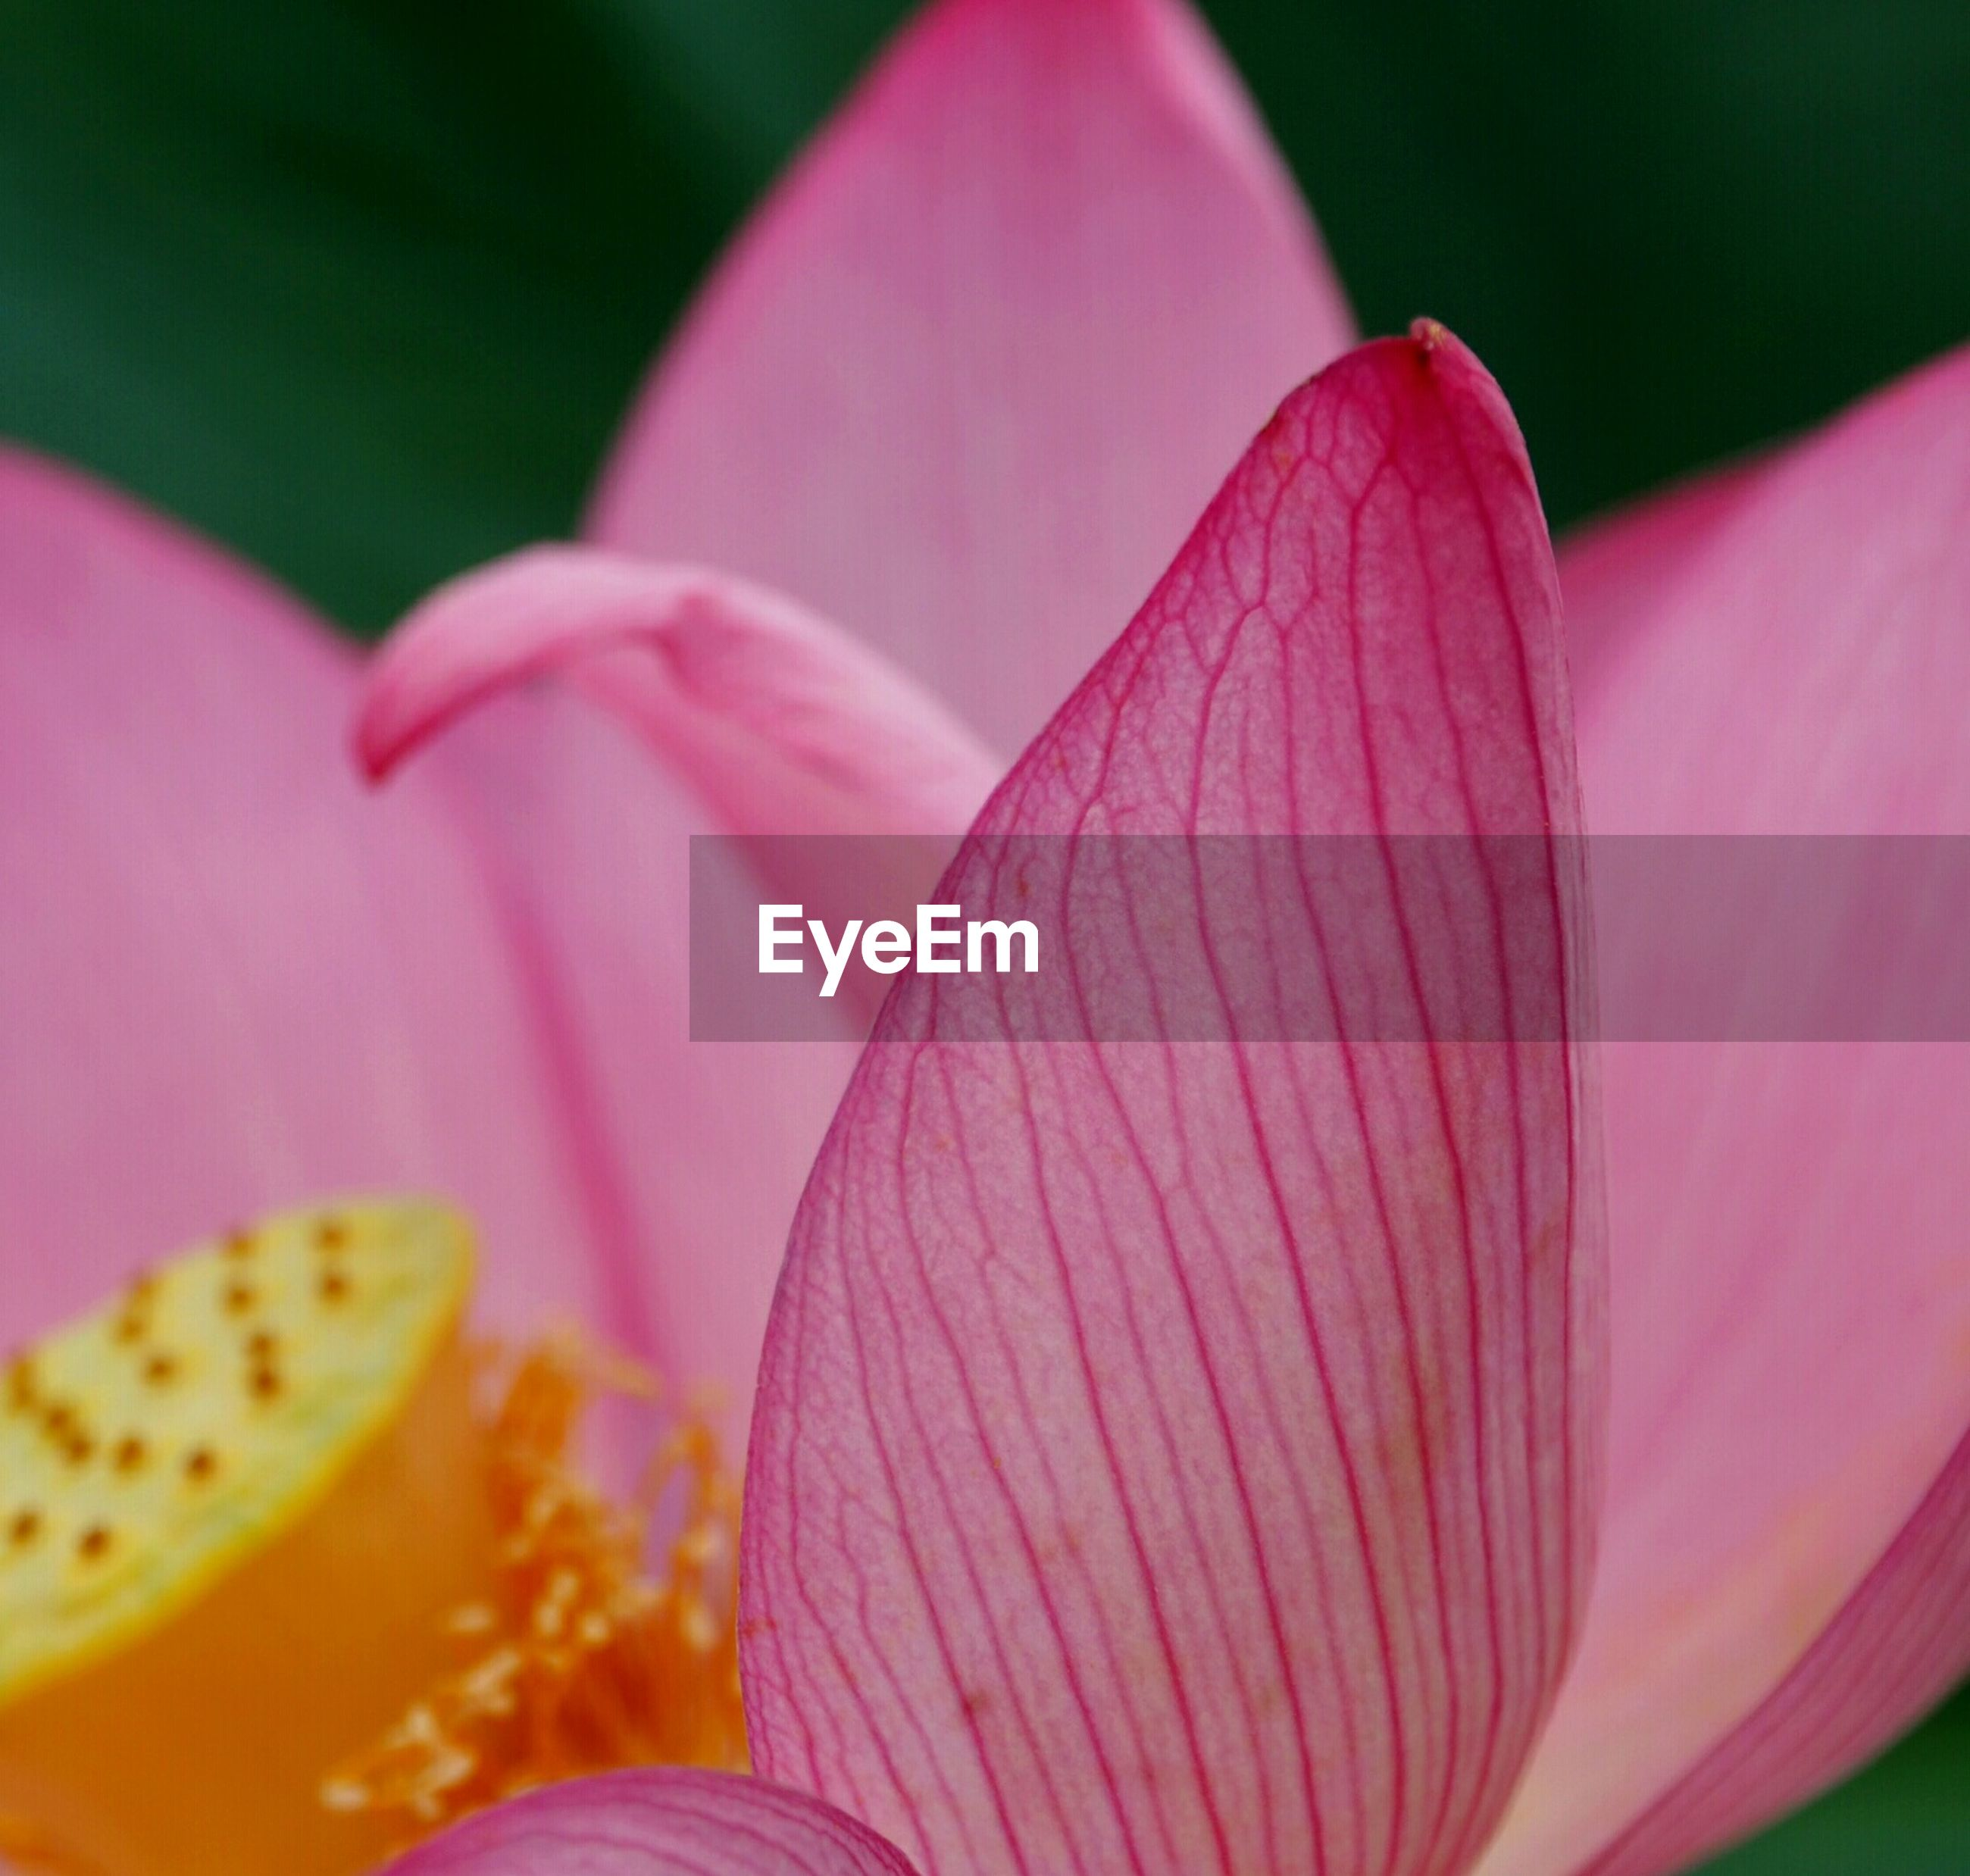 flower, petal, pink color, freshness, fragility, flower head, close-up, beauty in nature, growth, focus on foreground, pink, nature, single flower, selective focus, plant, blooming, tulip, stamen, pollen, purple